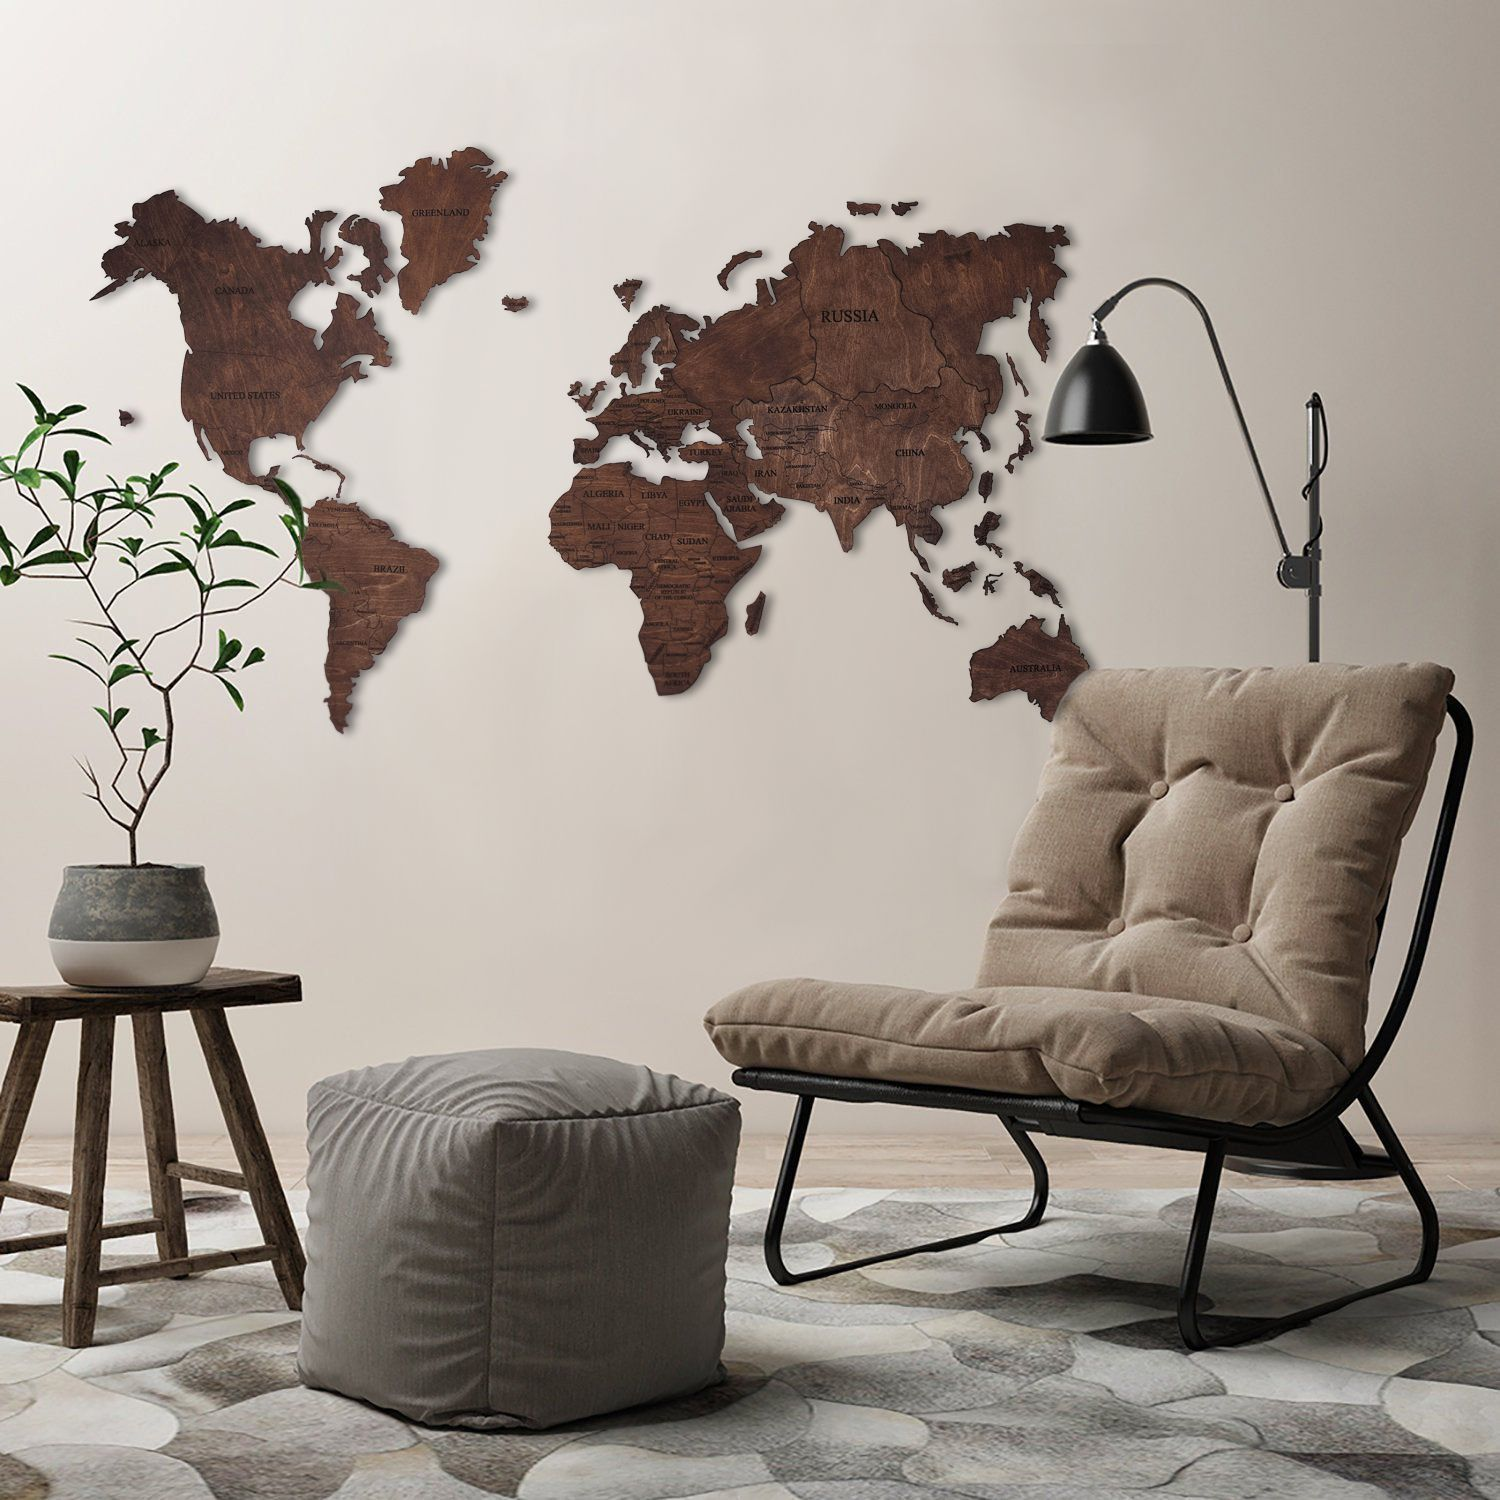 Wood Wall Art Wall Map Of The World Map Wooden Travel Push Pin Etsy Large Wood Wall Art World Map Wall Art World Map Wall